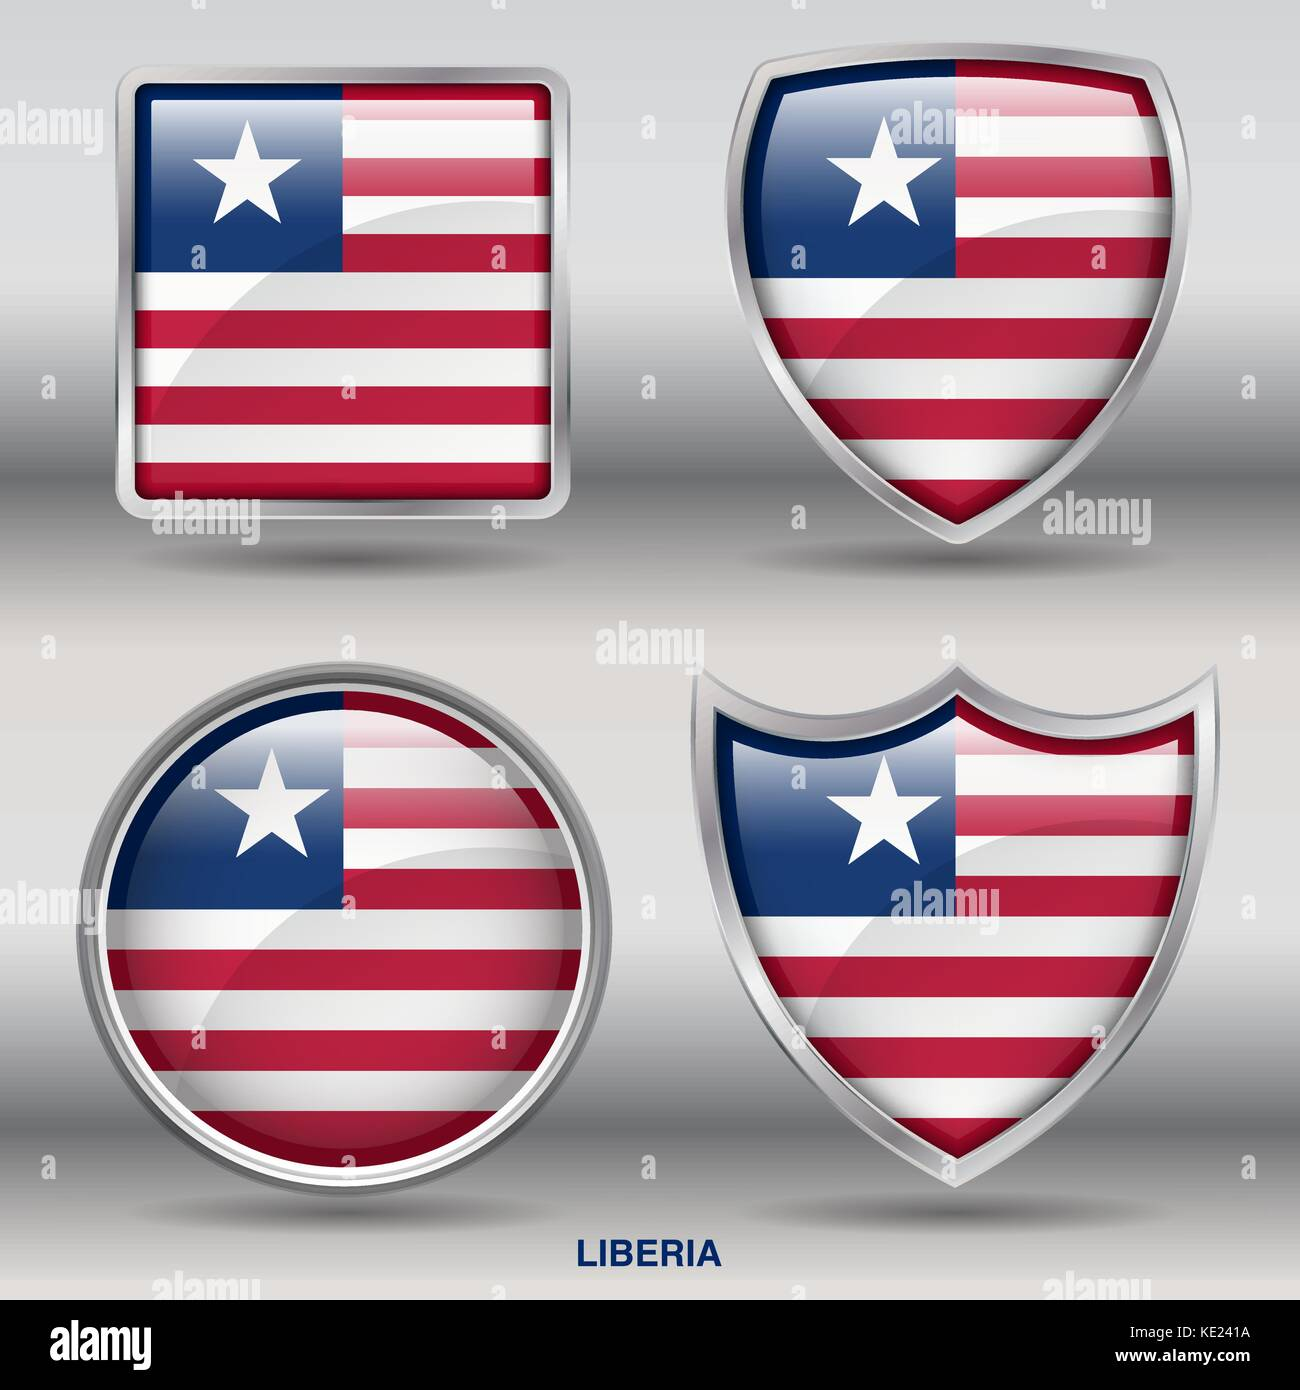 Liberia Flag - 4 shapes Flags States Country in the World with clipping path - Stock Image